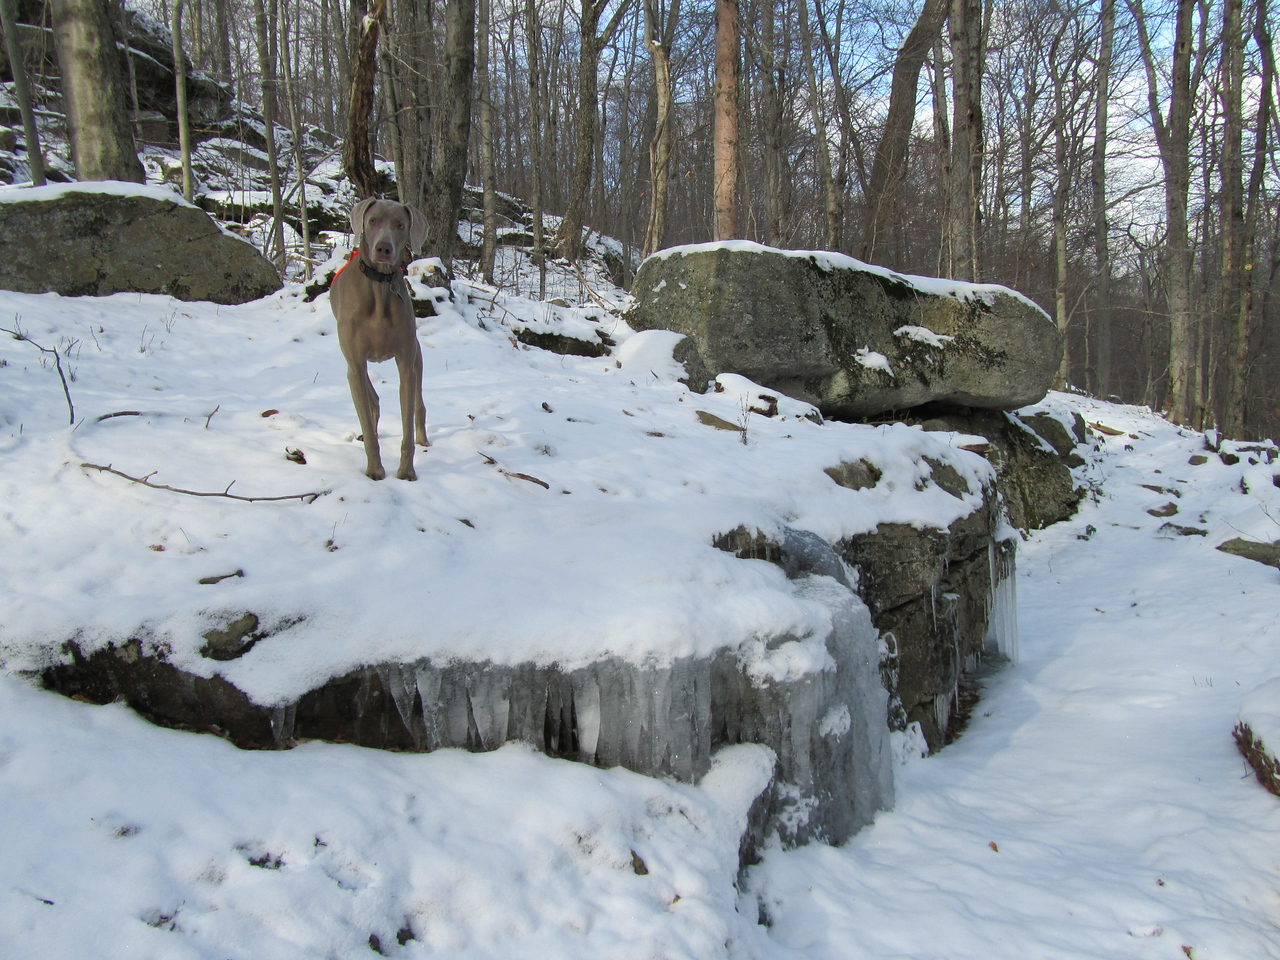 This was another trail with interesting rock formations that might be pretty in the spring when not snow covered.